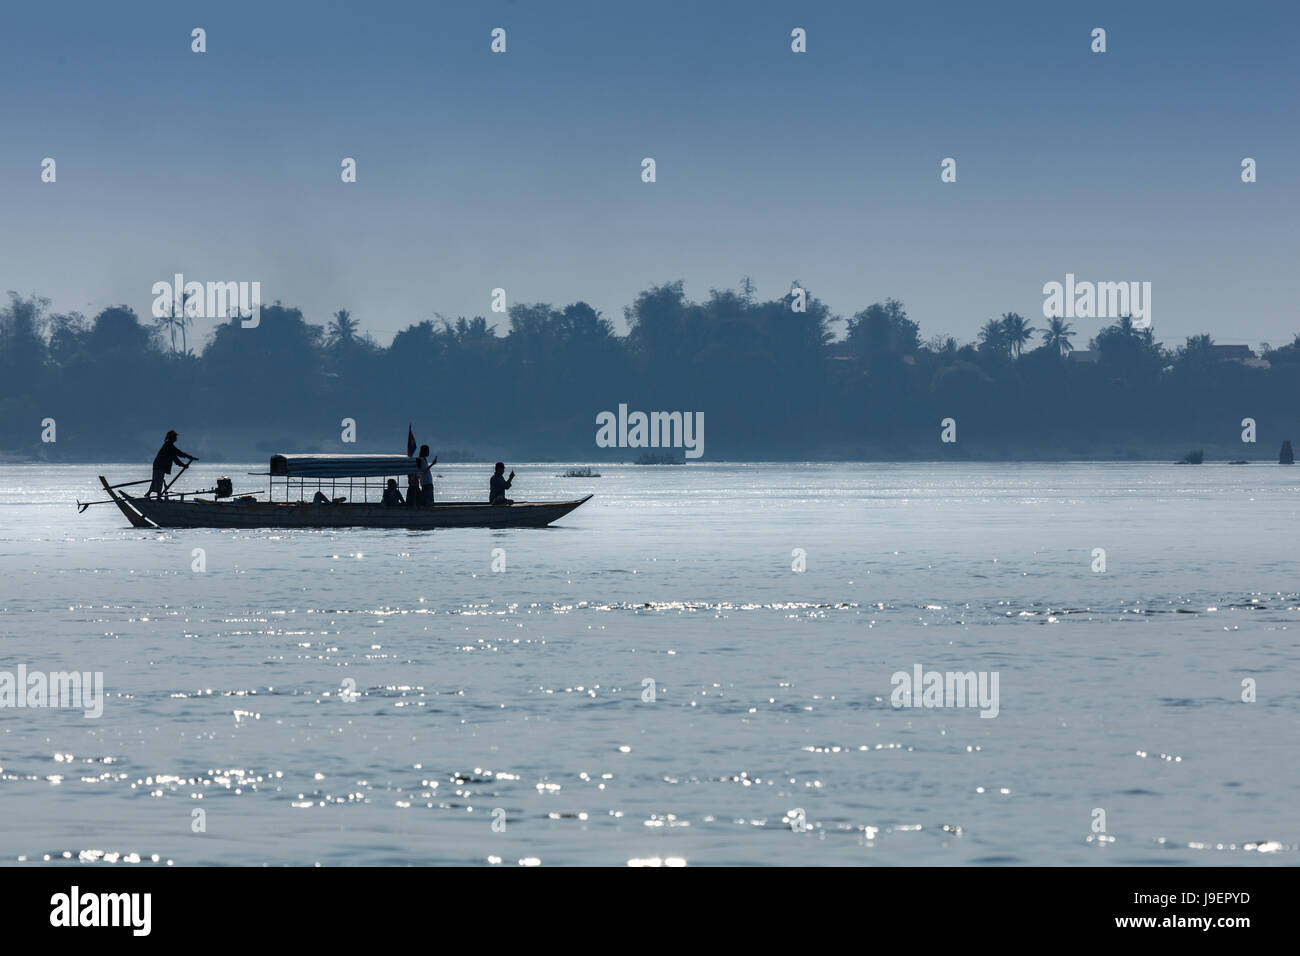 Tourist boat on the Mekong river looking for Irrawaddy River Dolphins near Kratie - Stock Image